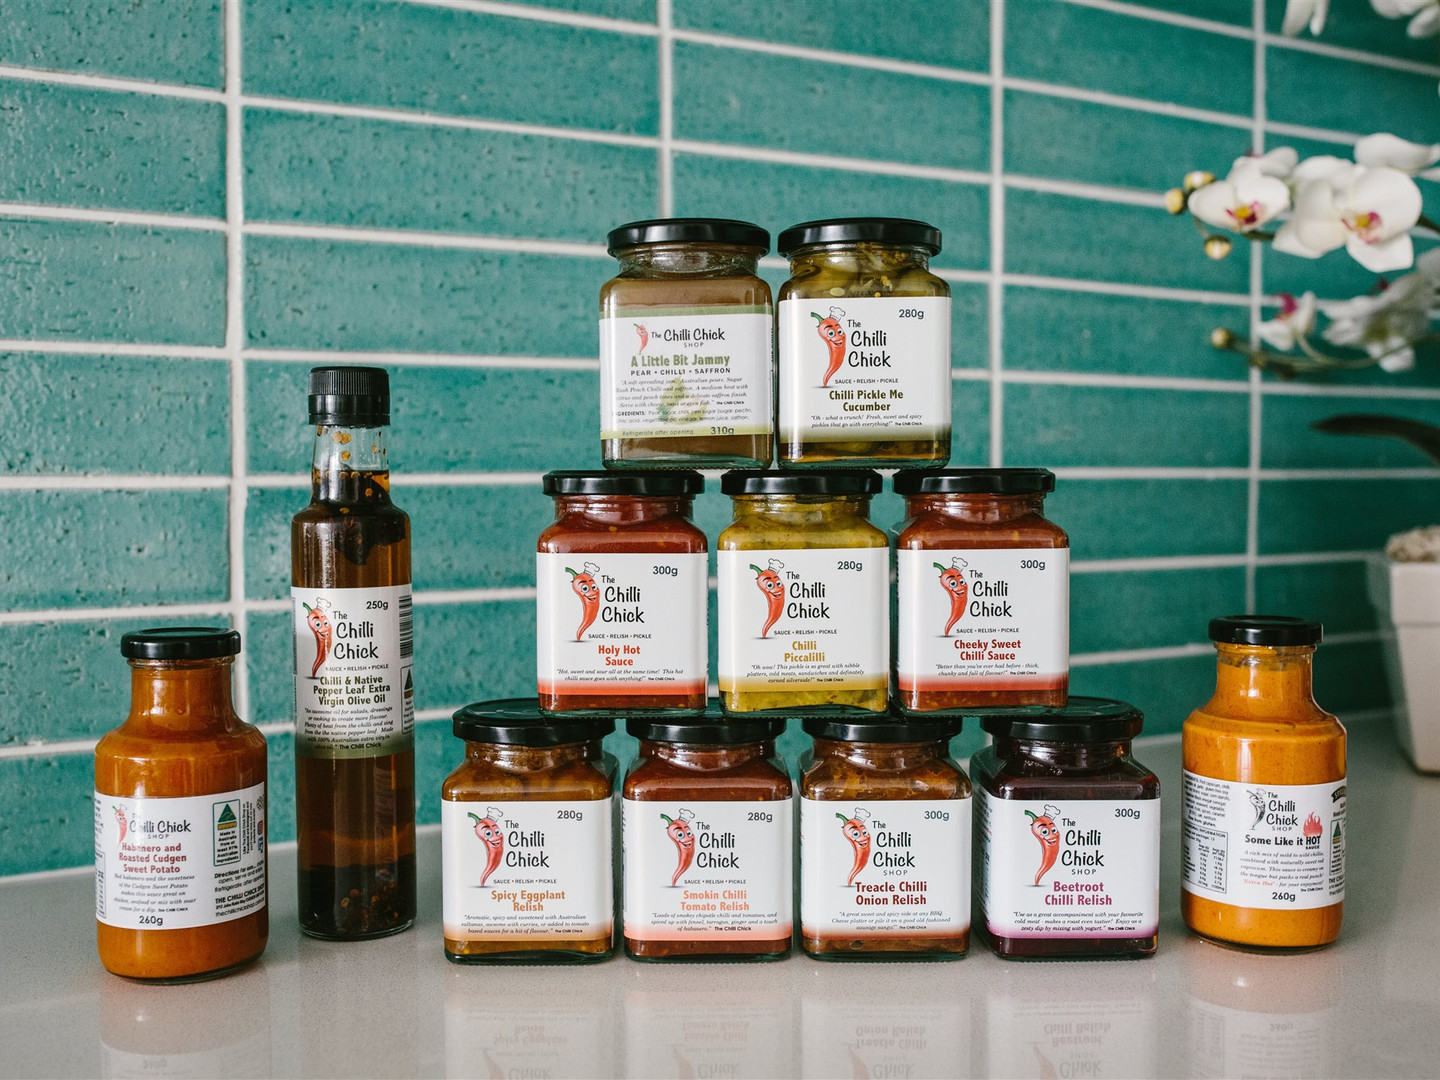 The Chilli Chick Shop - product range